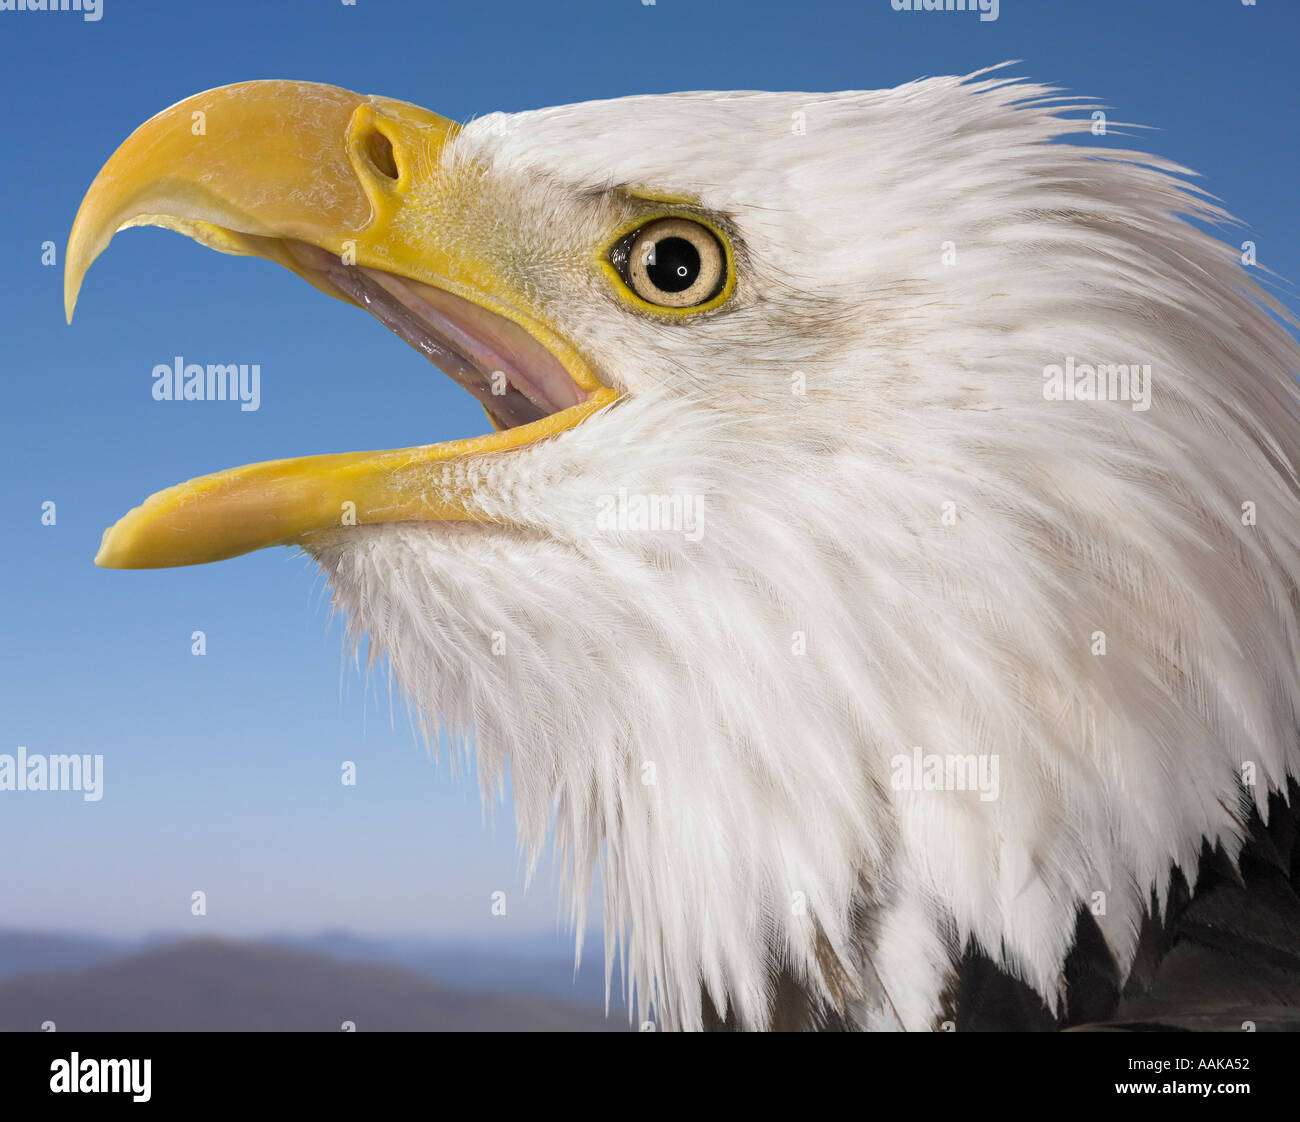 Bald eagle beak open Stock Photo: 2341457 - Alamy